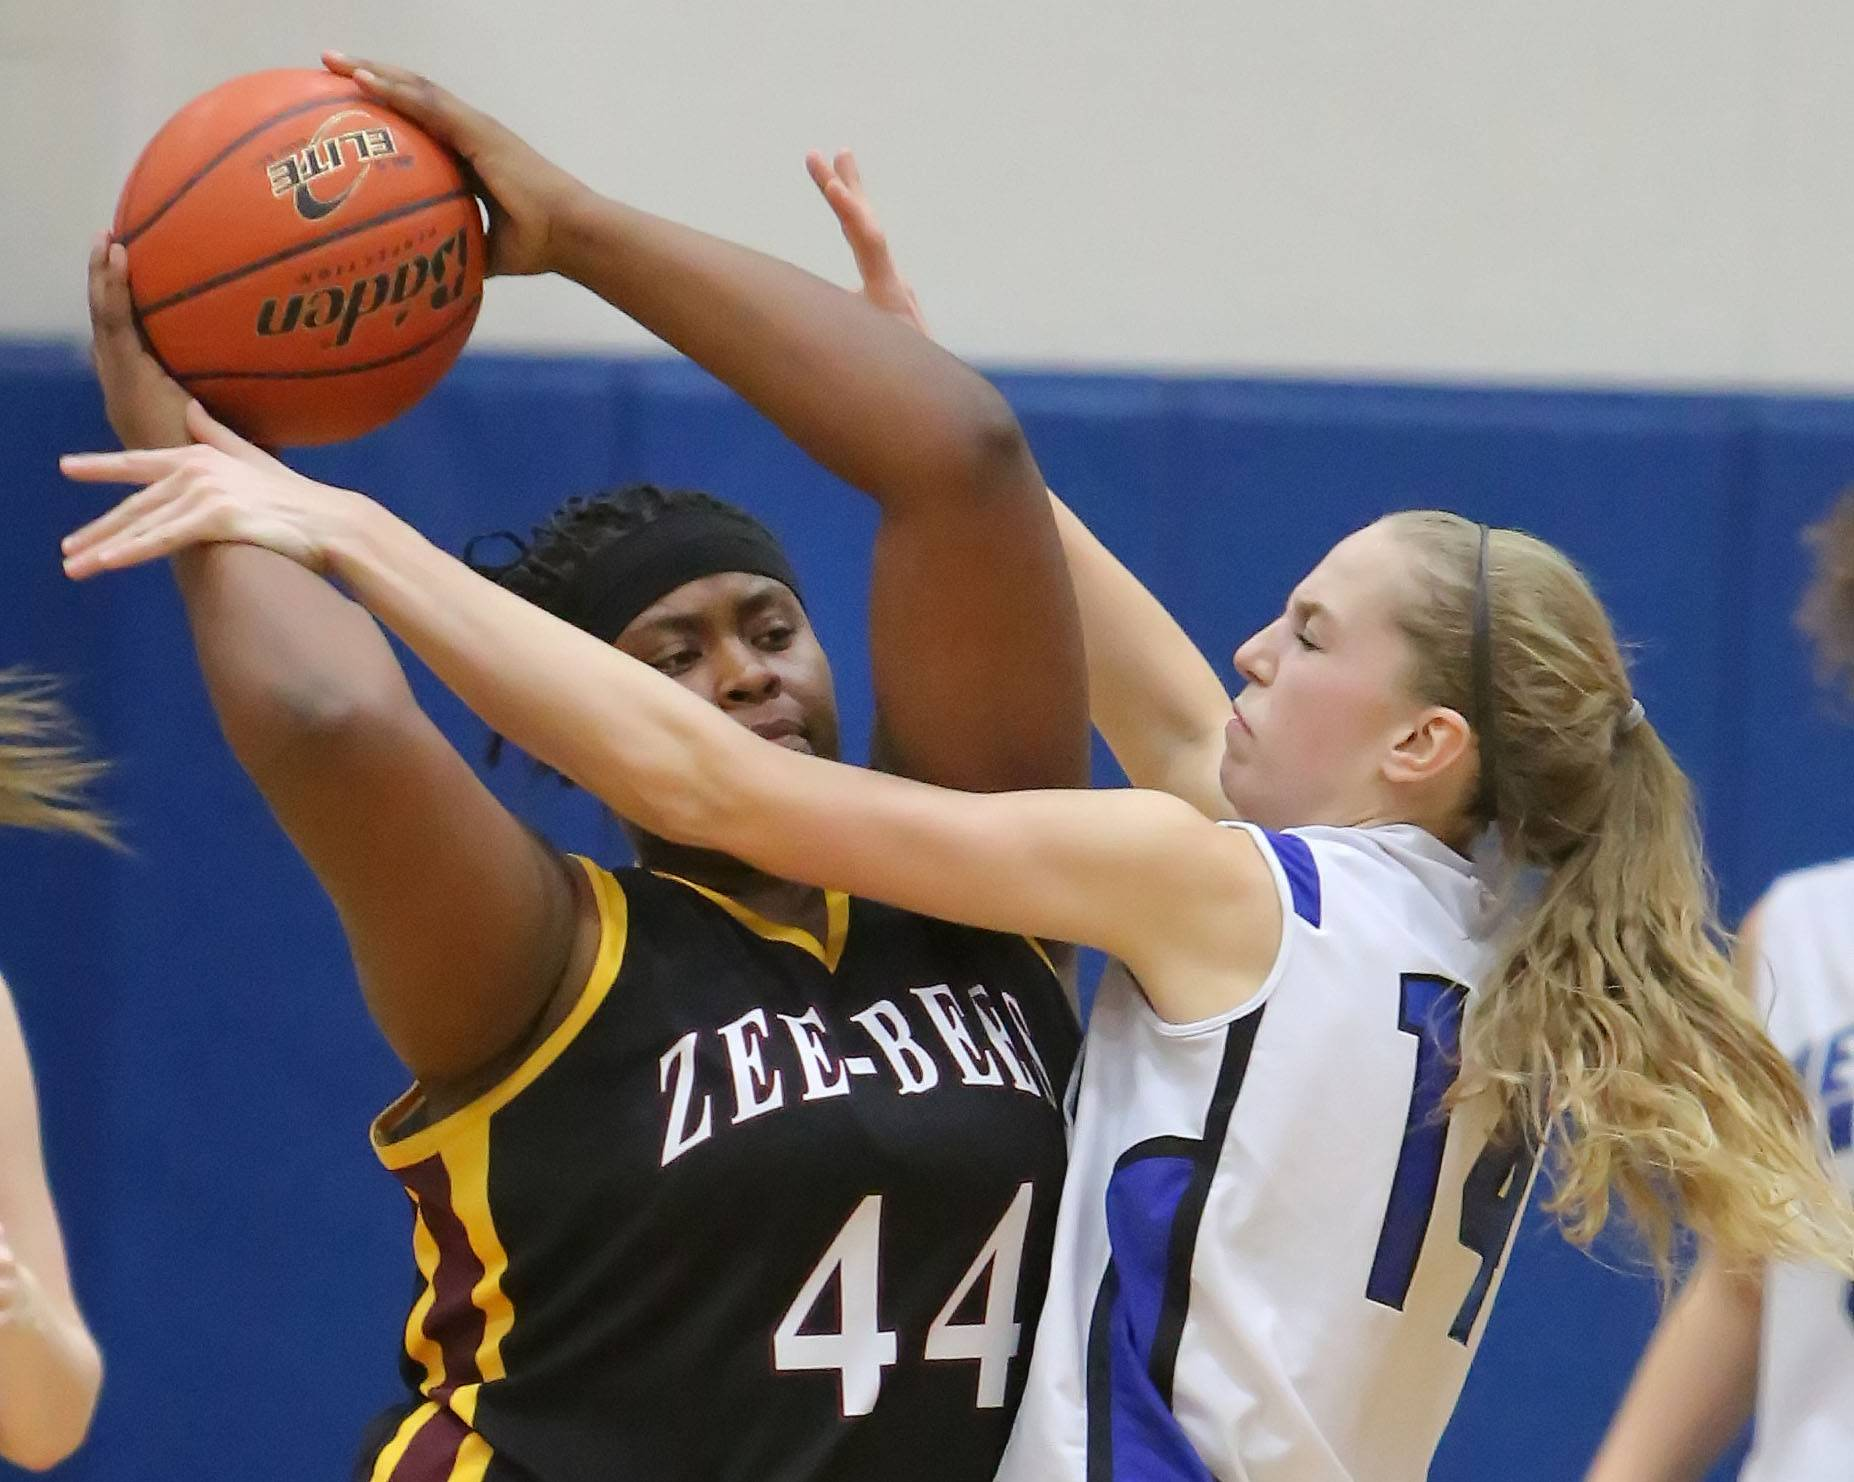 Vernon Hills' Kasey Firnbach, right defends against Zion-Benton's Mia Yarbrough in the North Suburban Conference championship game Wednesday night at Vernon Hills.